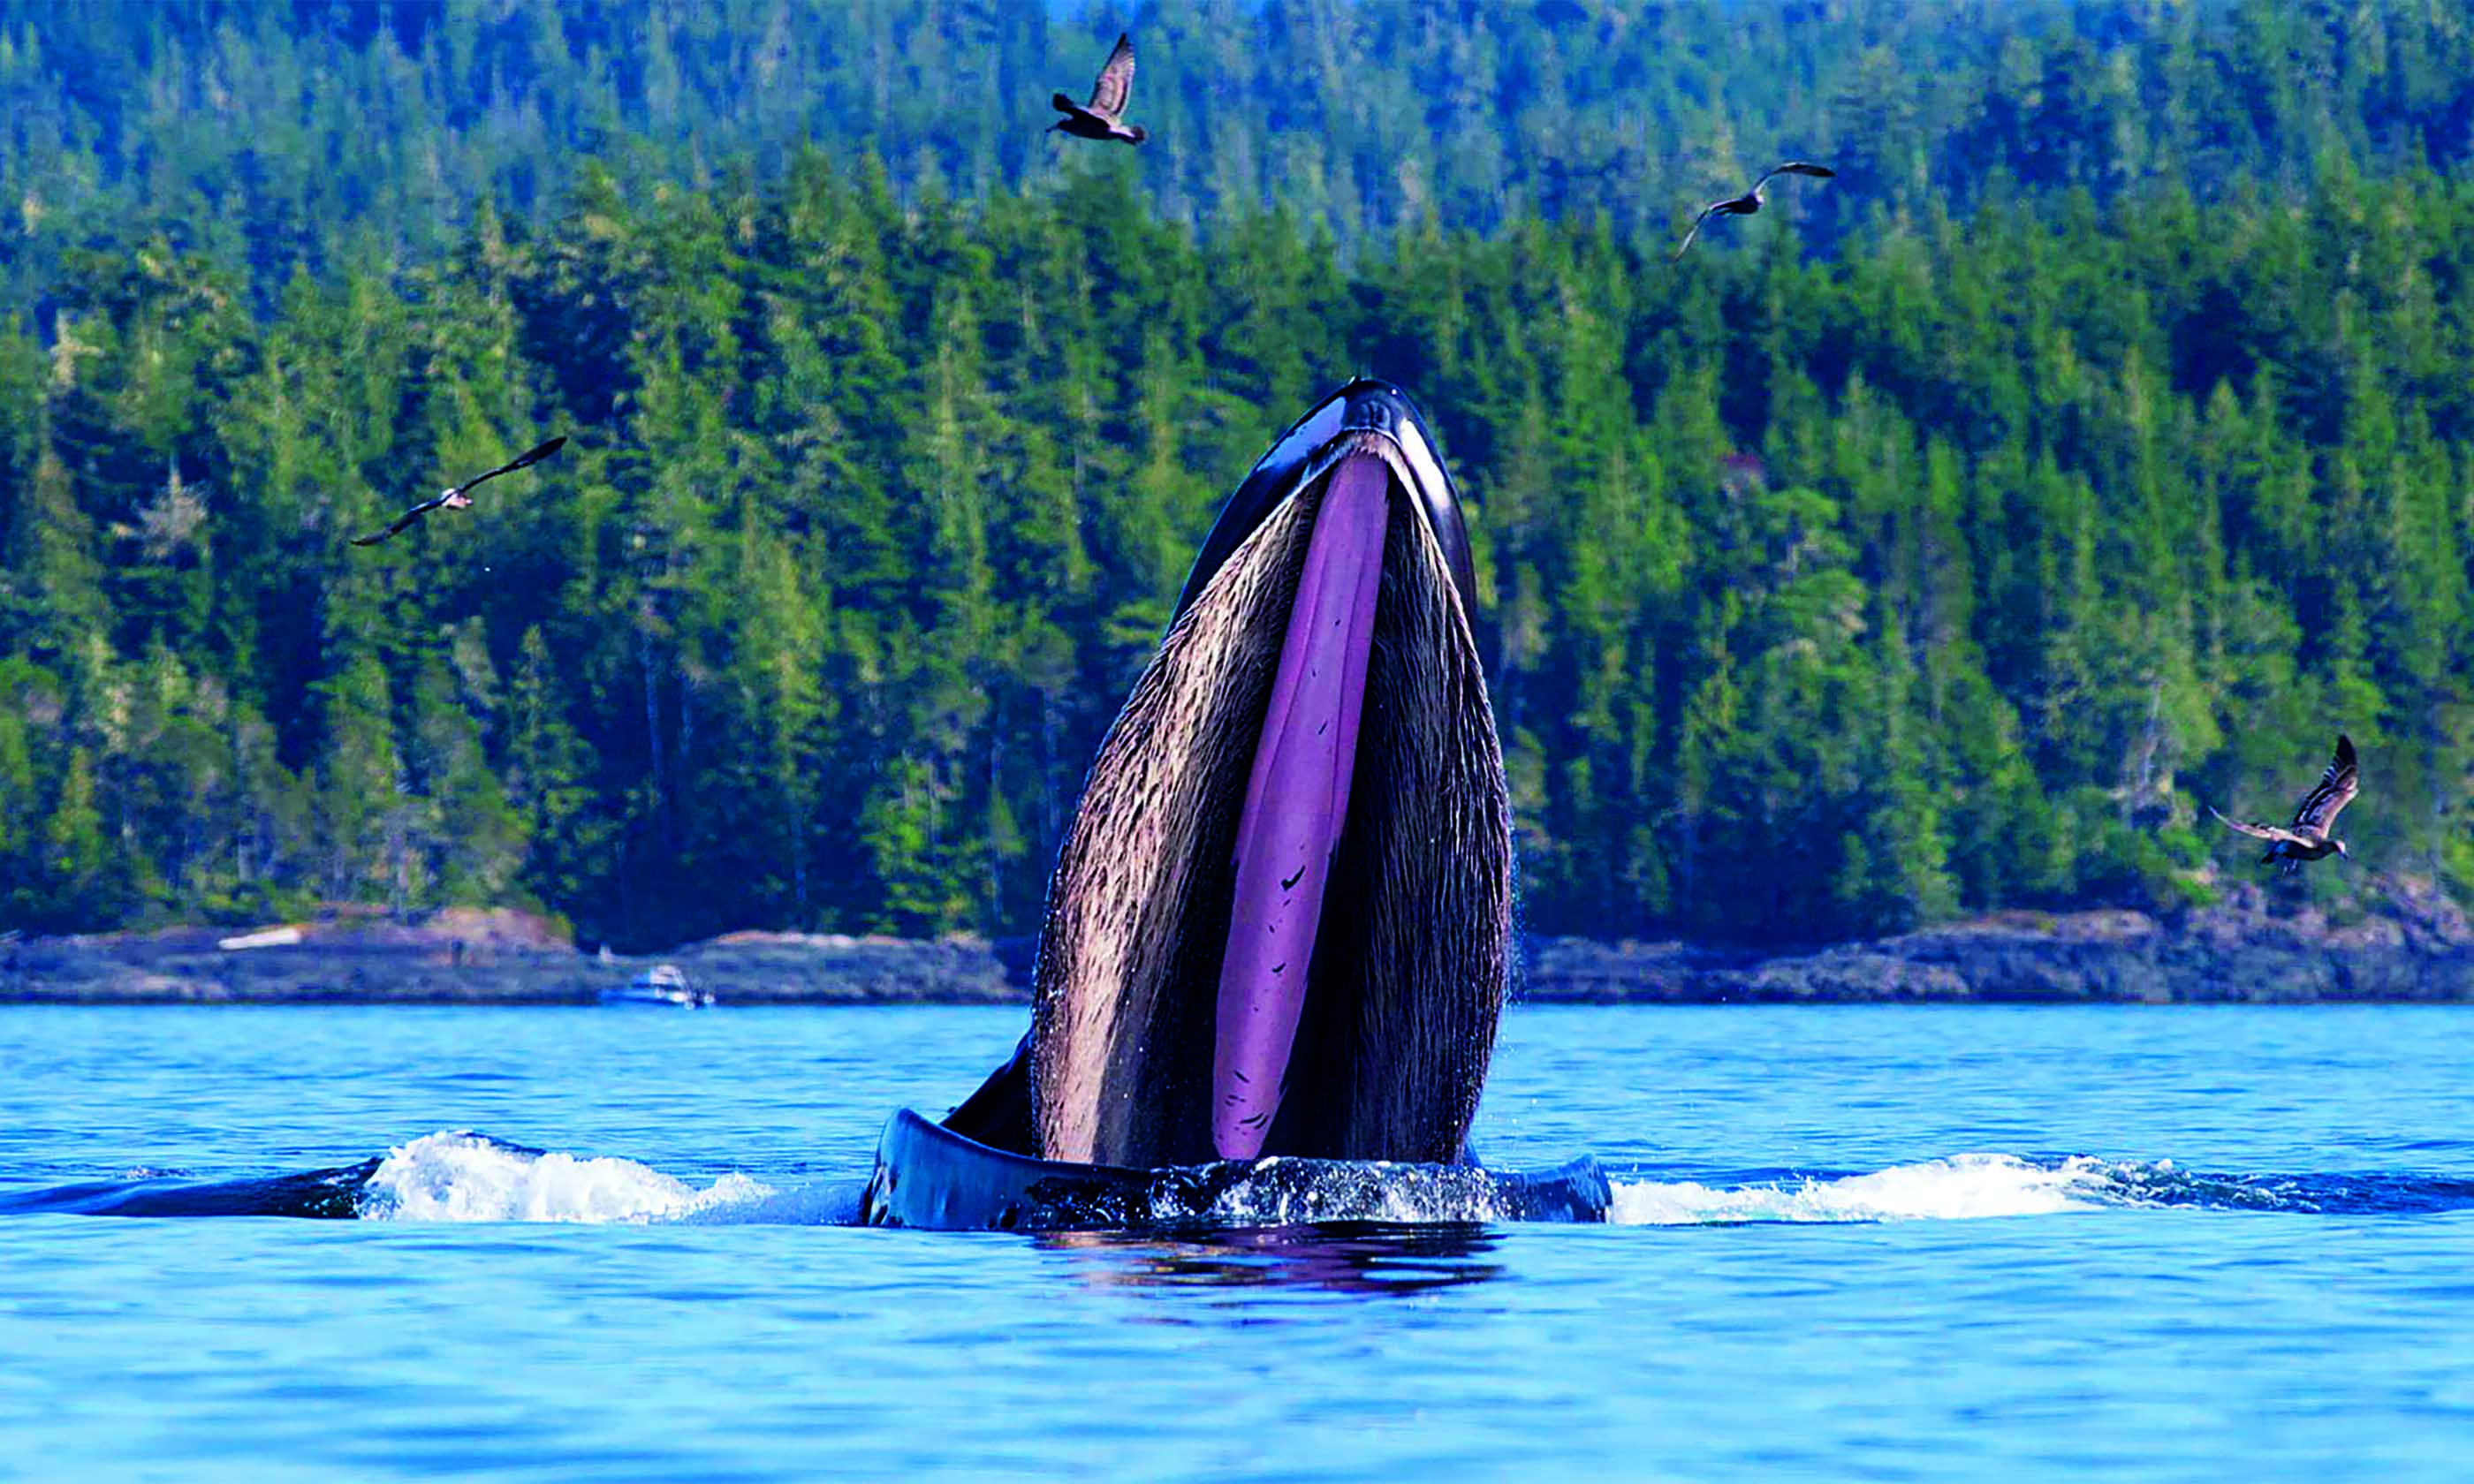 kayaking with whales f9 - Top 15 whale watching trips